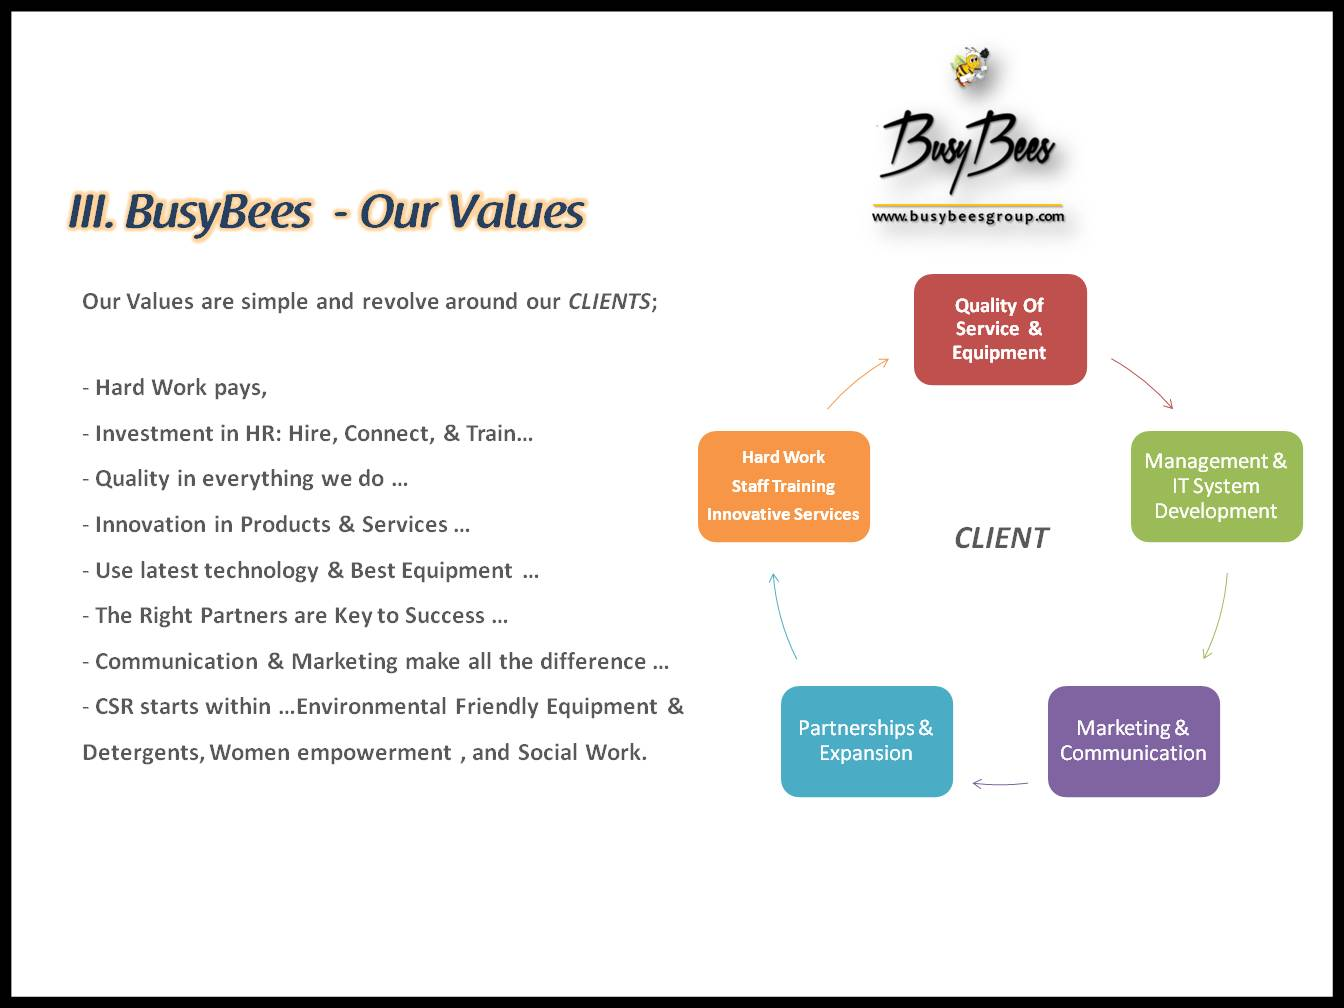 BusyBees Dubai Cleaning And Maintenance Services - A Customer Oriented  Household Cleaning Services Company 5